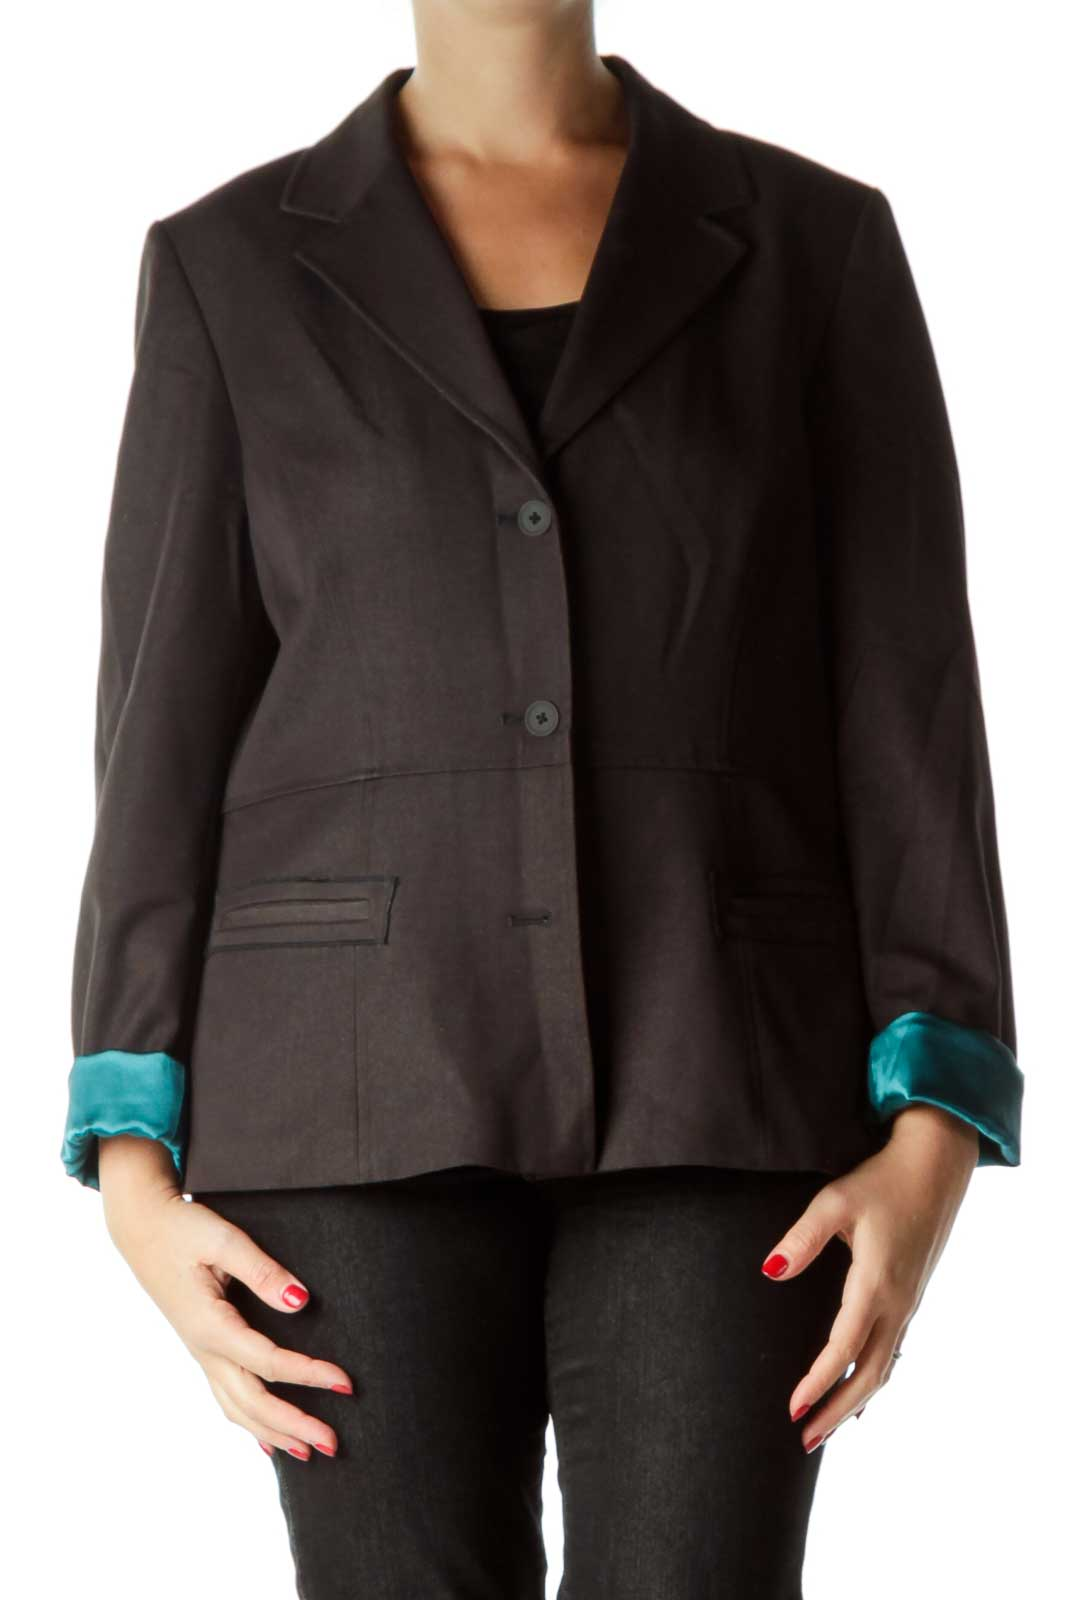 Black Suit Jacket with Teal Lining Front